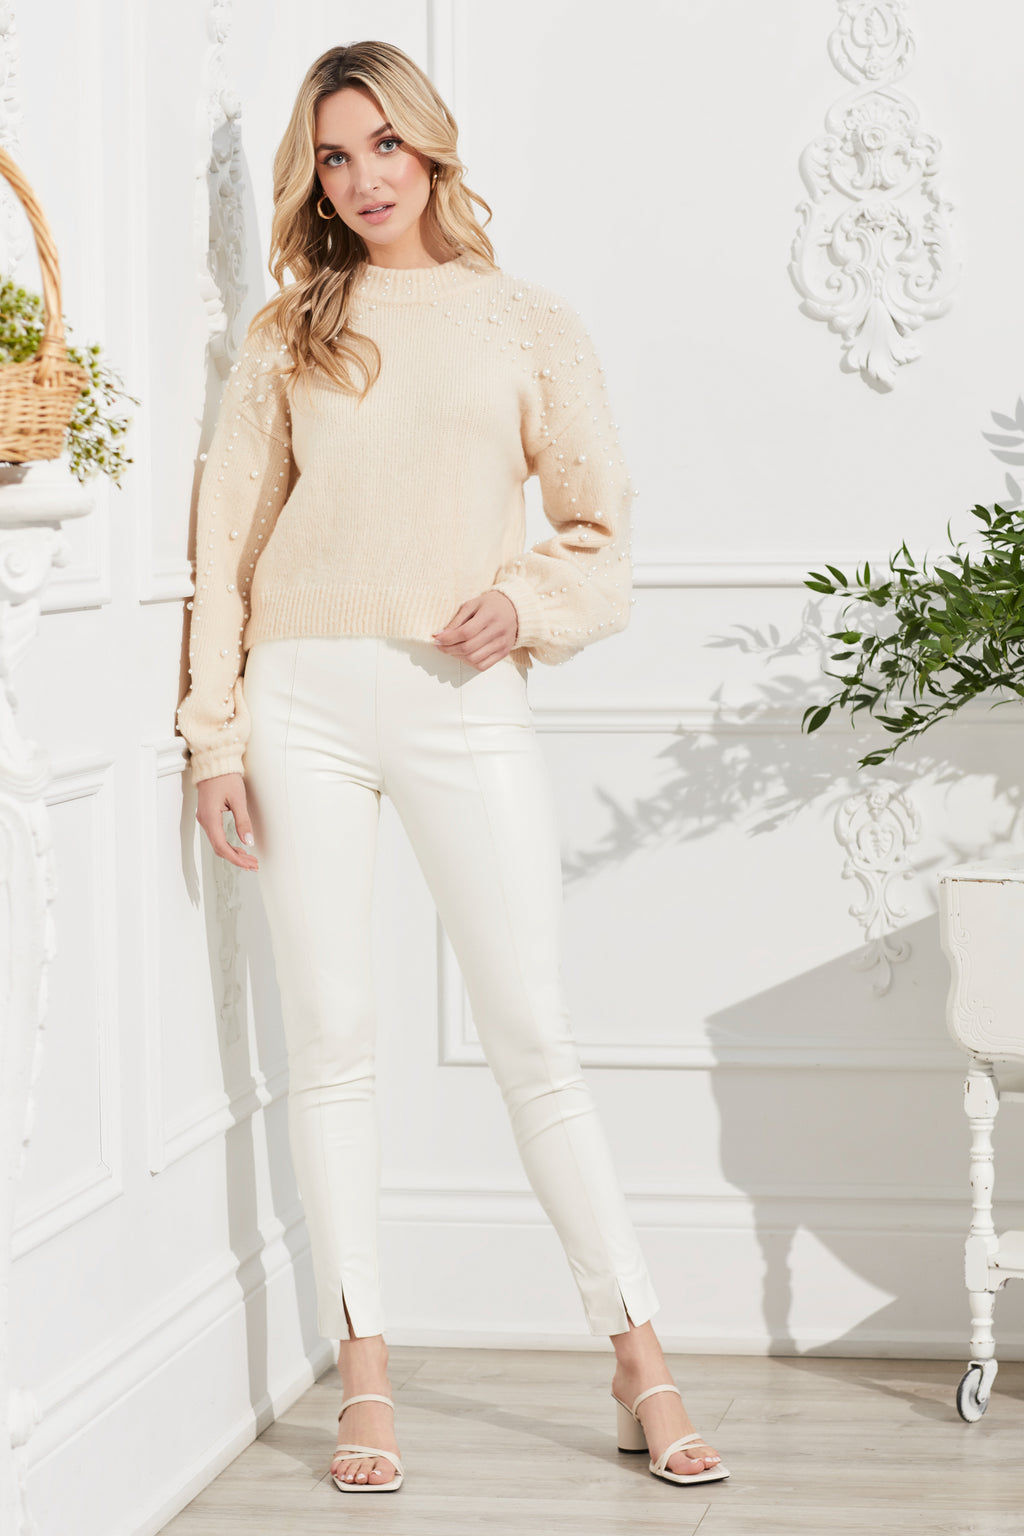 Arya Knit Pearl Encrusted Sweater - honey